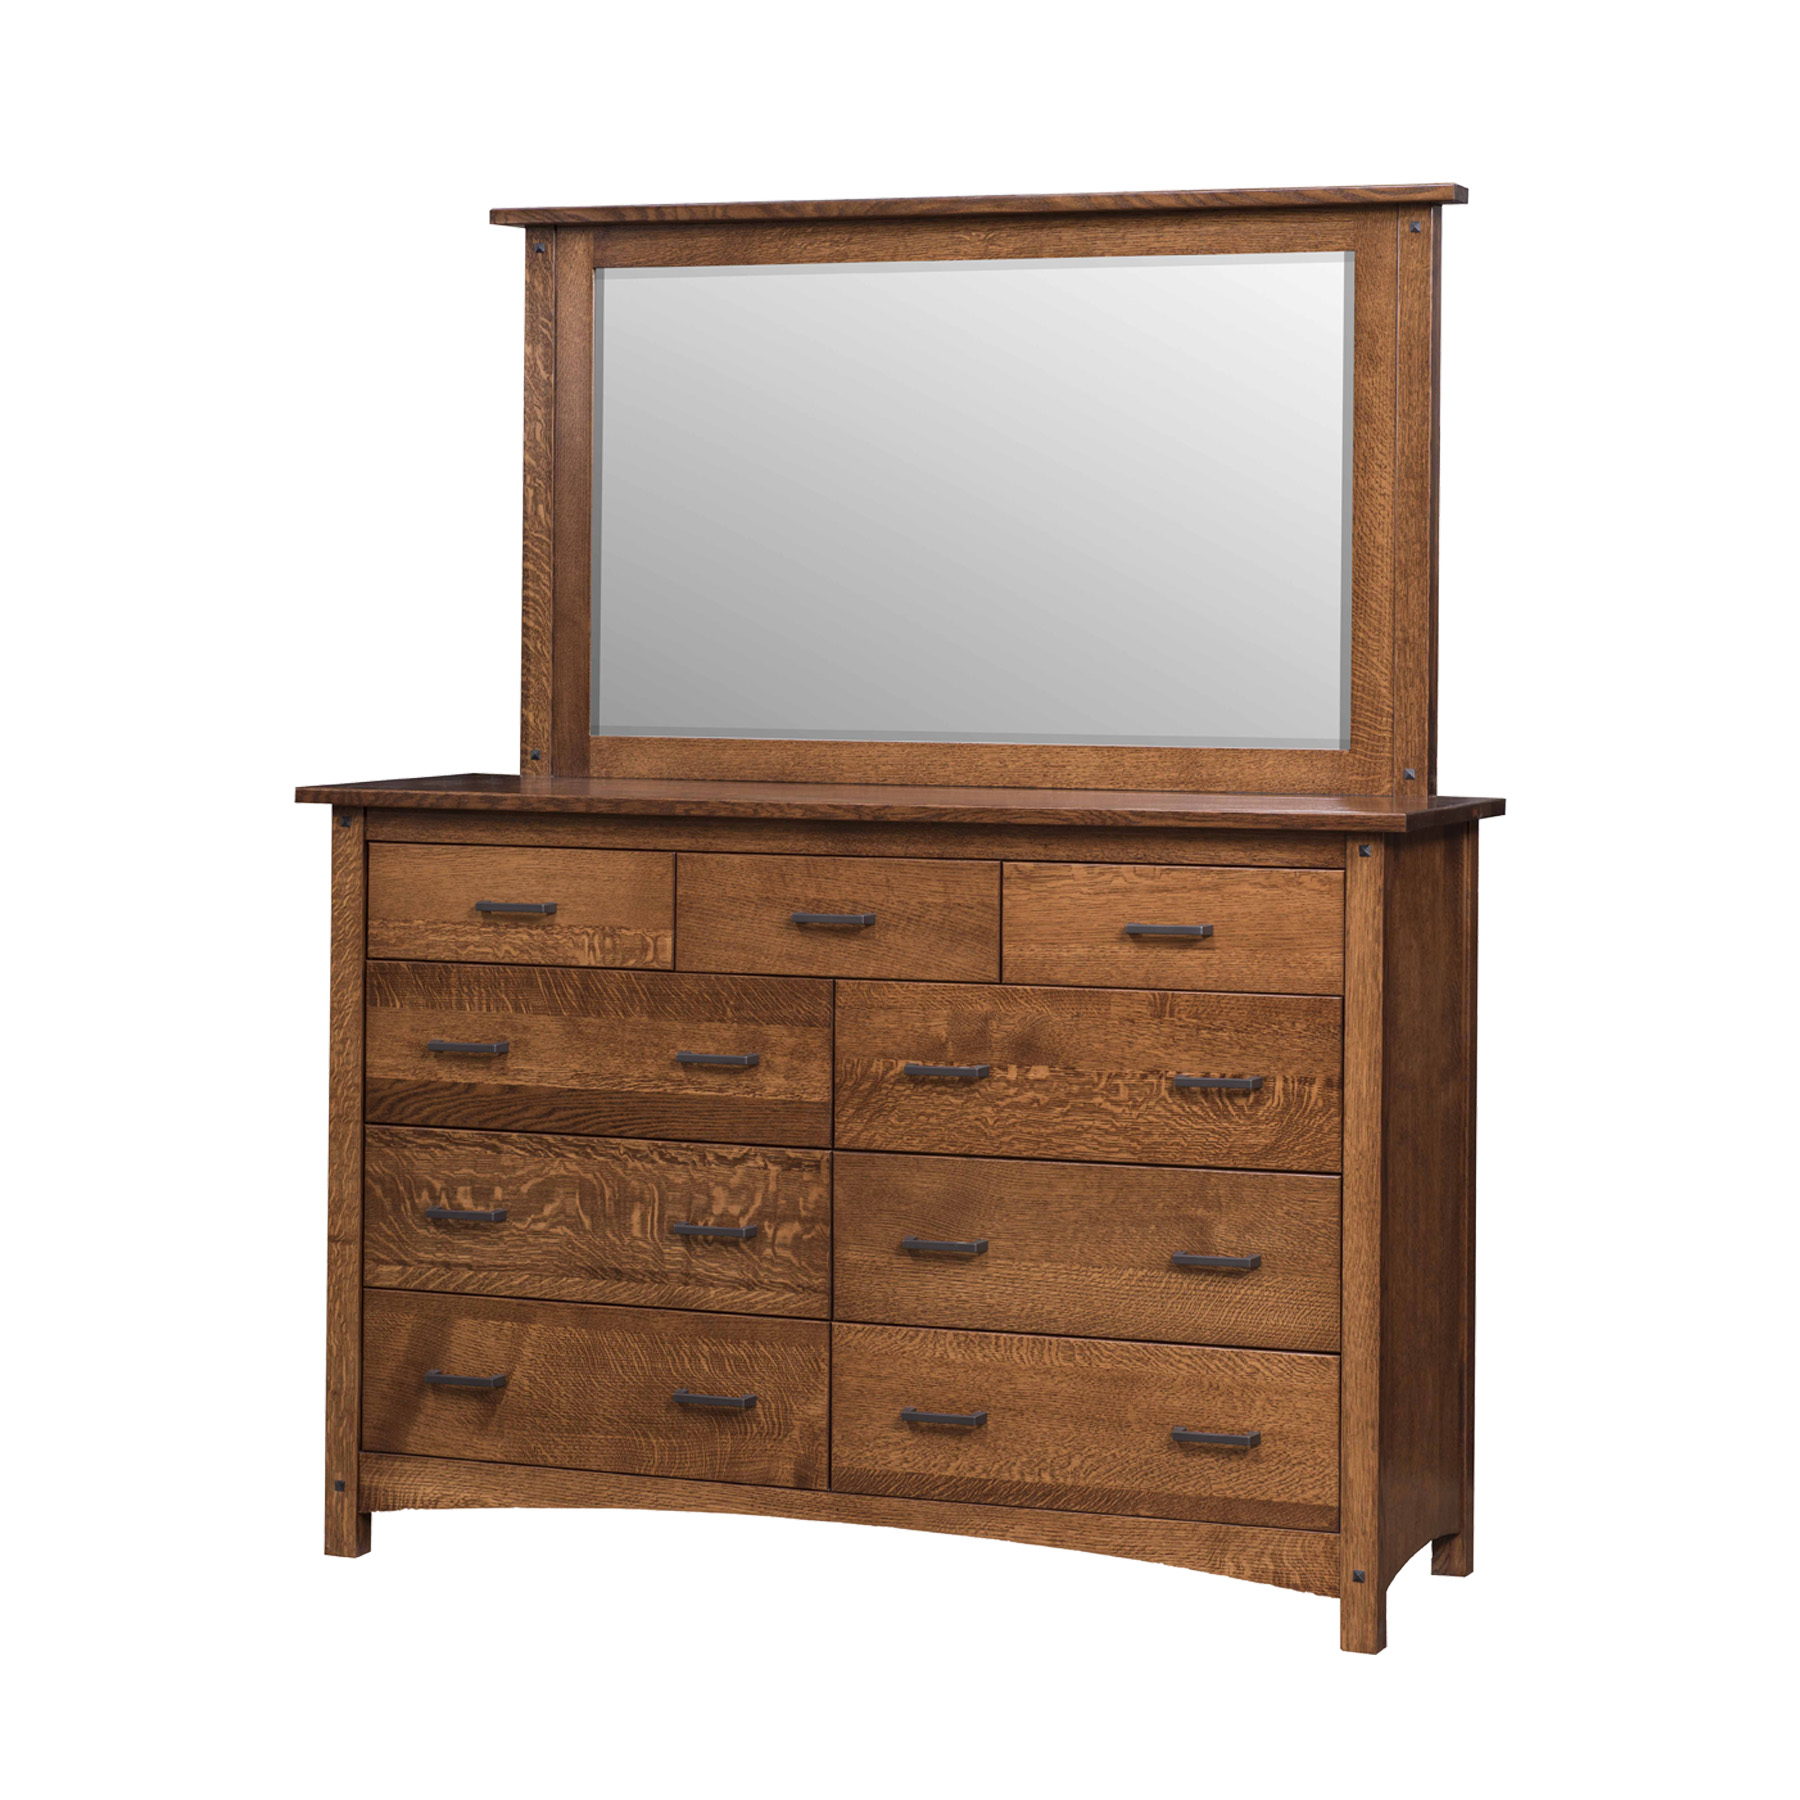 Emory Grand Double Mule Dresser and Mirr